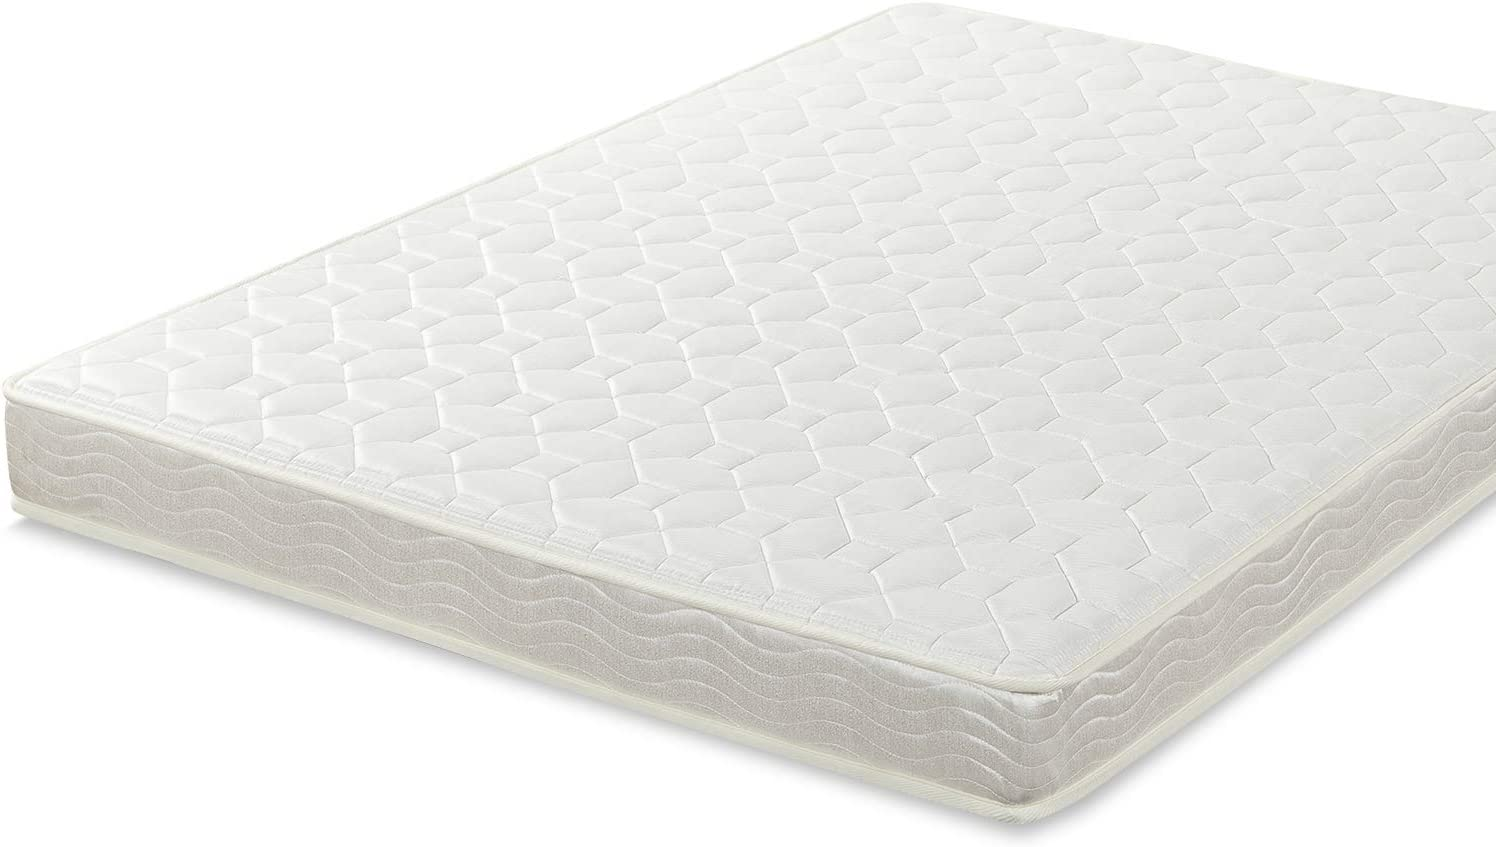 Best Price Mattress Full Mattress – 6 Inch Tight Top Spring Mattresses Infused with Green Tea, Full Size